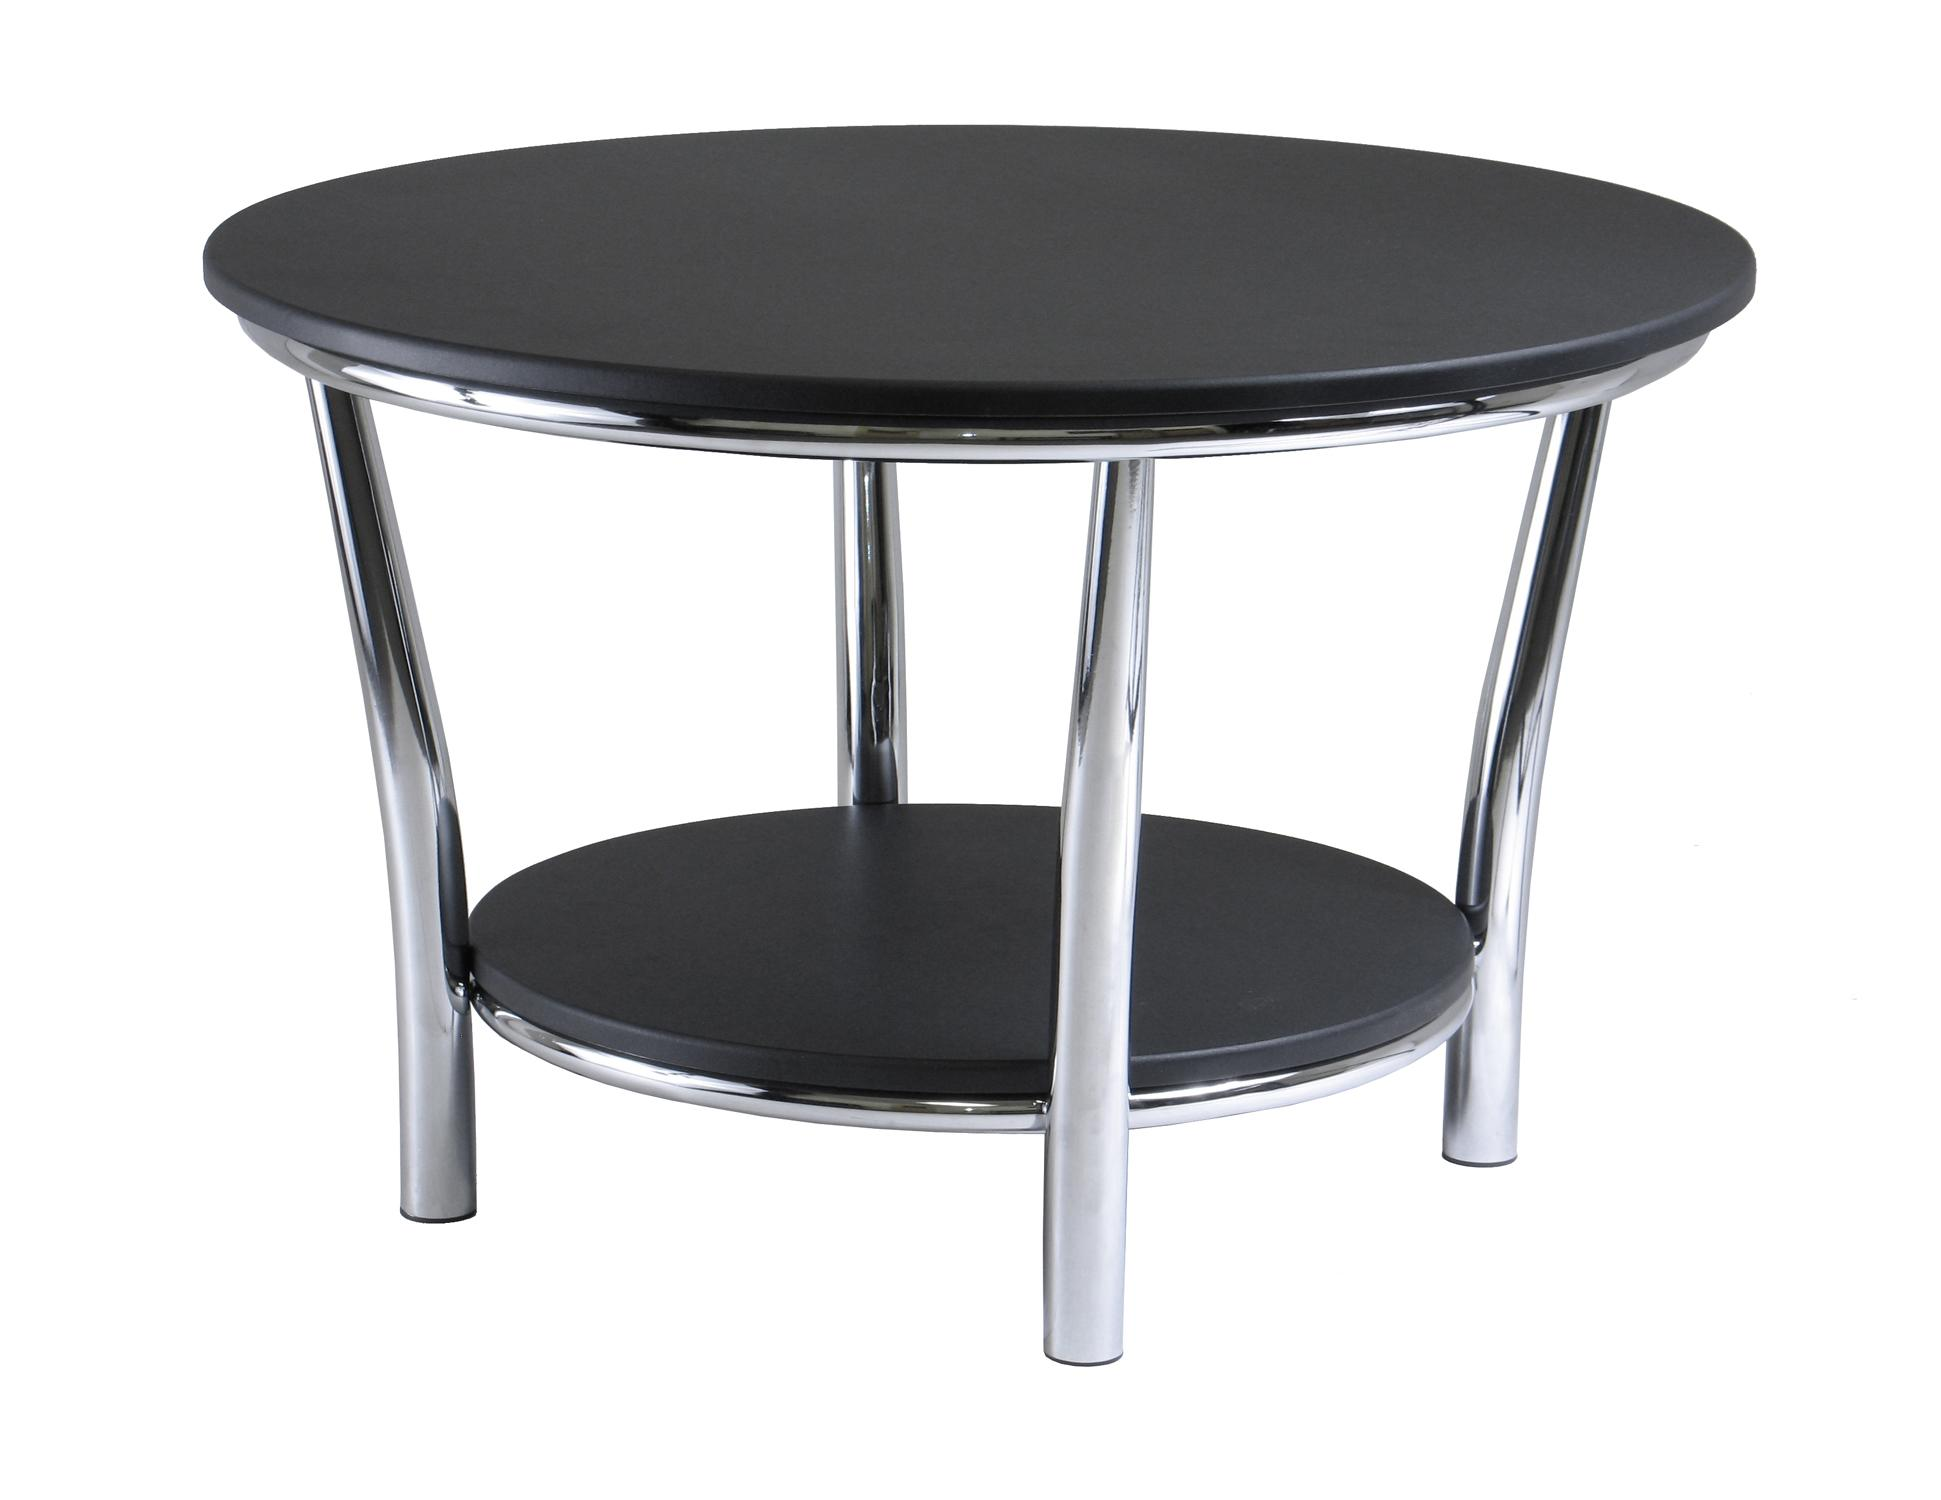 winsome maya round coffee table black top metal legs by oj commerce 93230a. Black Bedroom Furniture Sets. Home Design Ideas